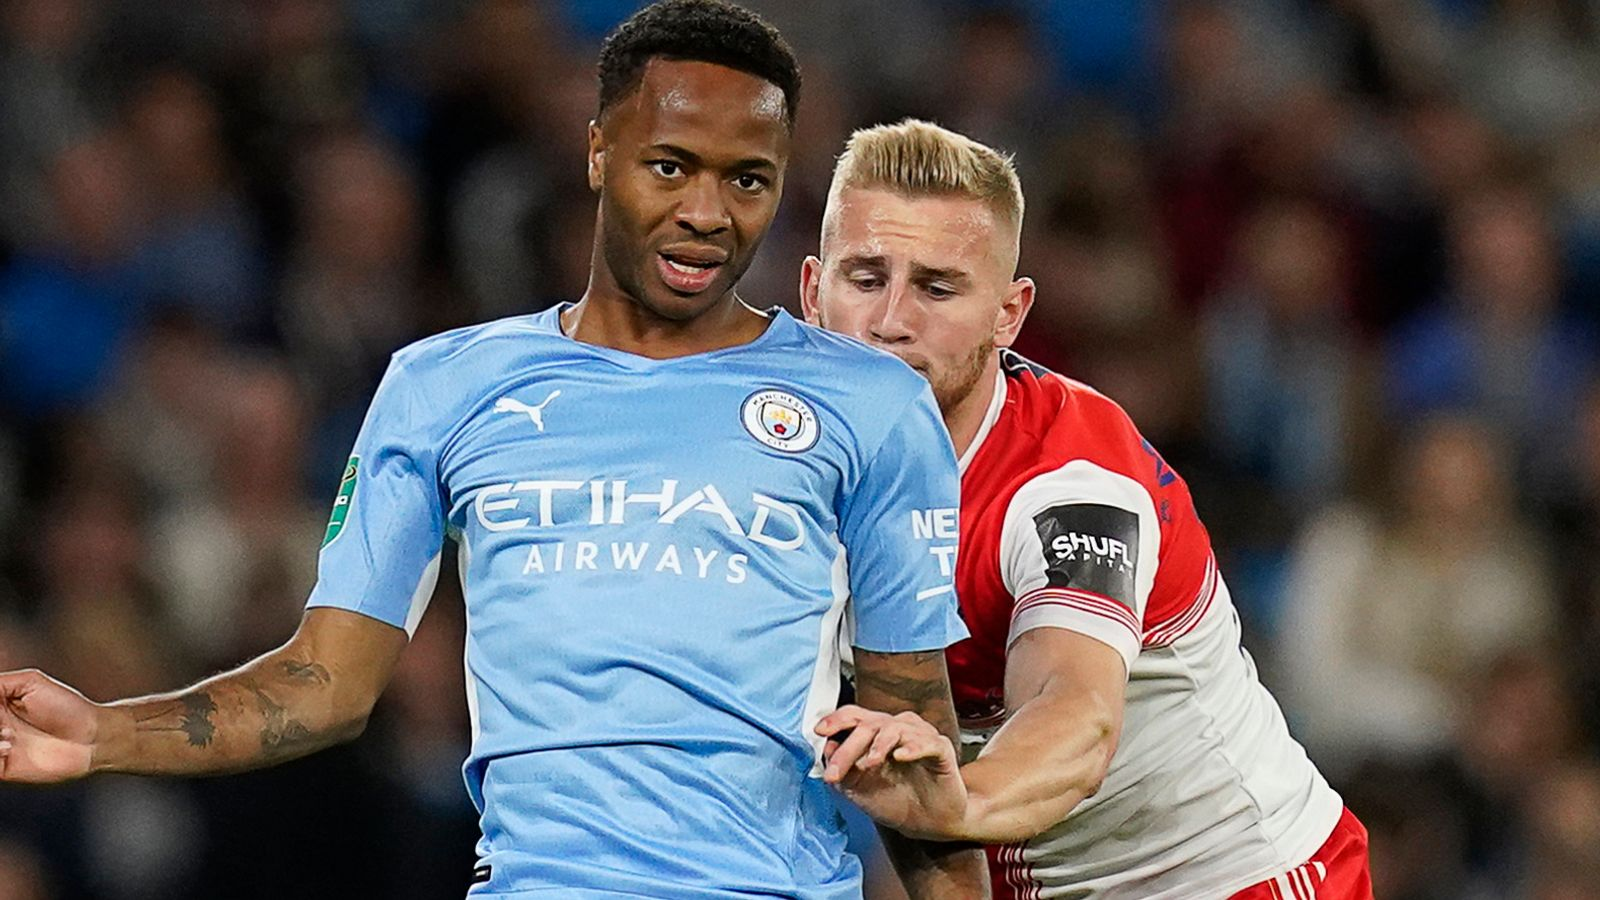 Raheem Sterling has been left frustrated by his lack of game time at Manchester City over the past few months